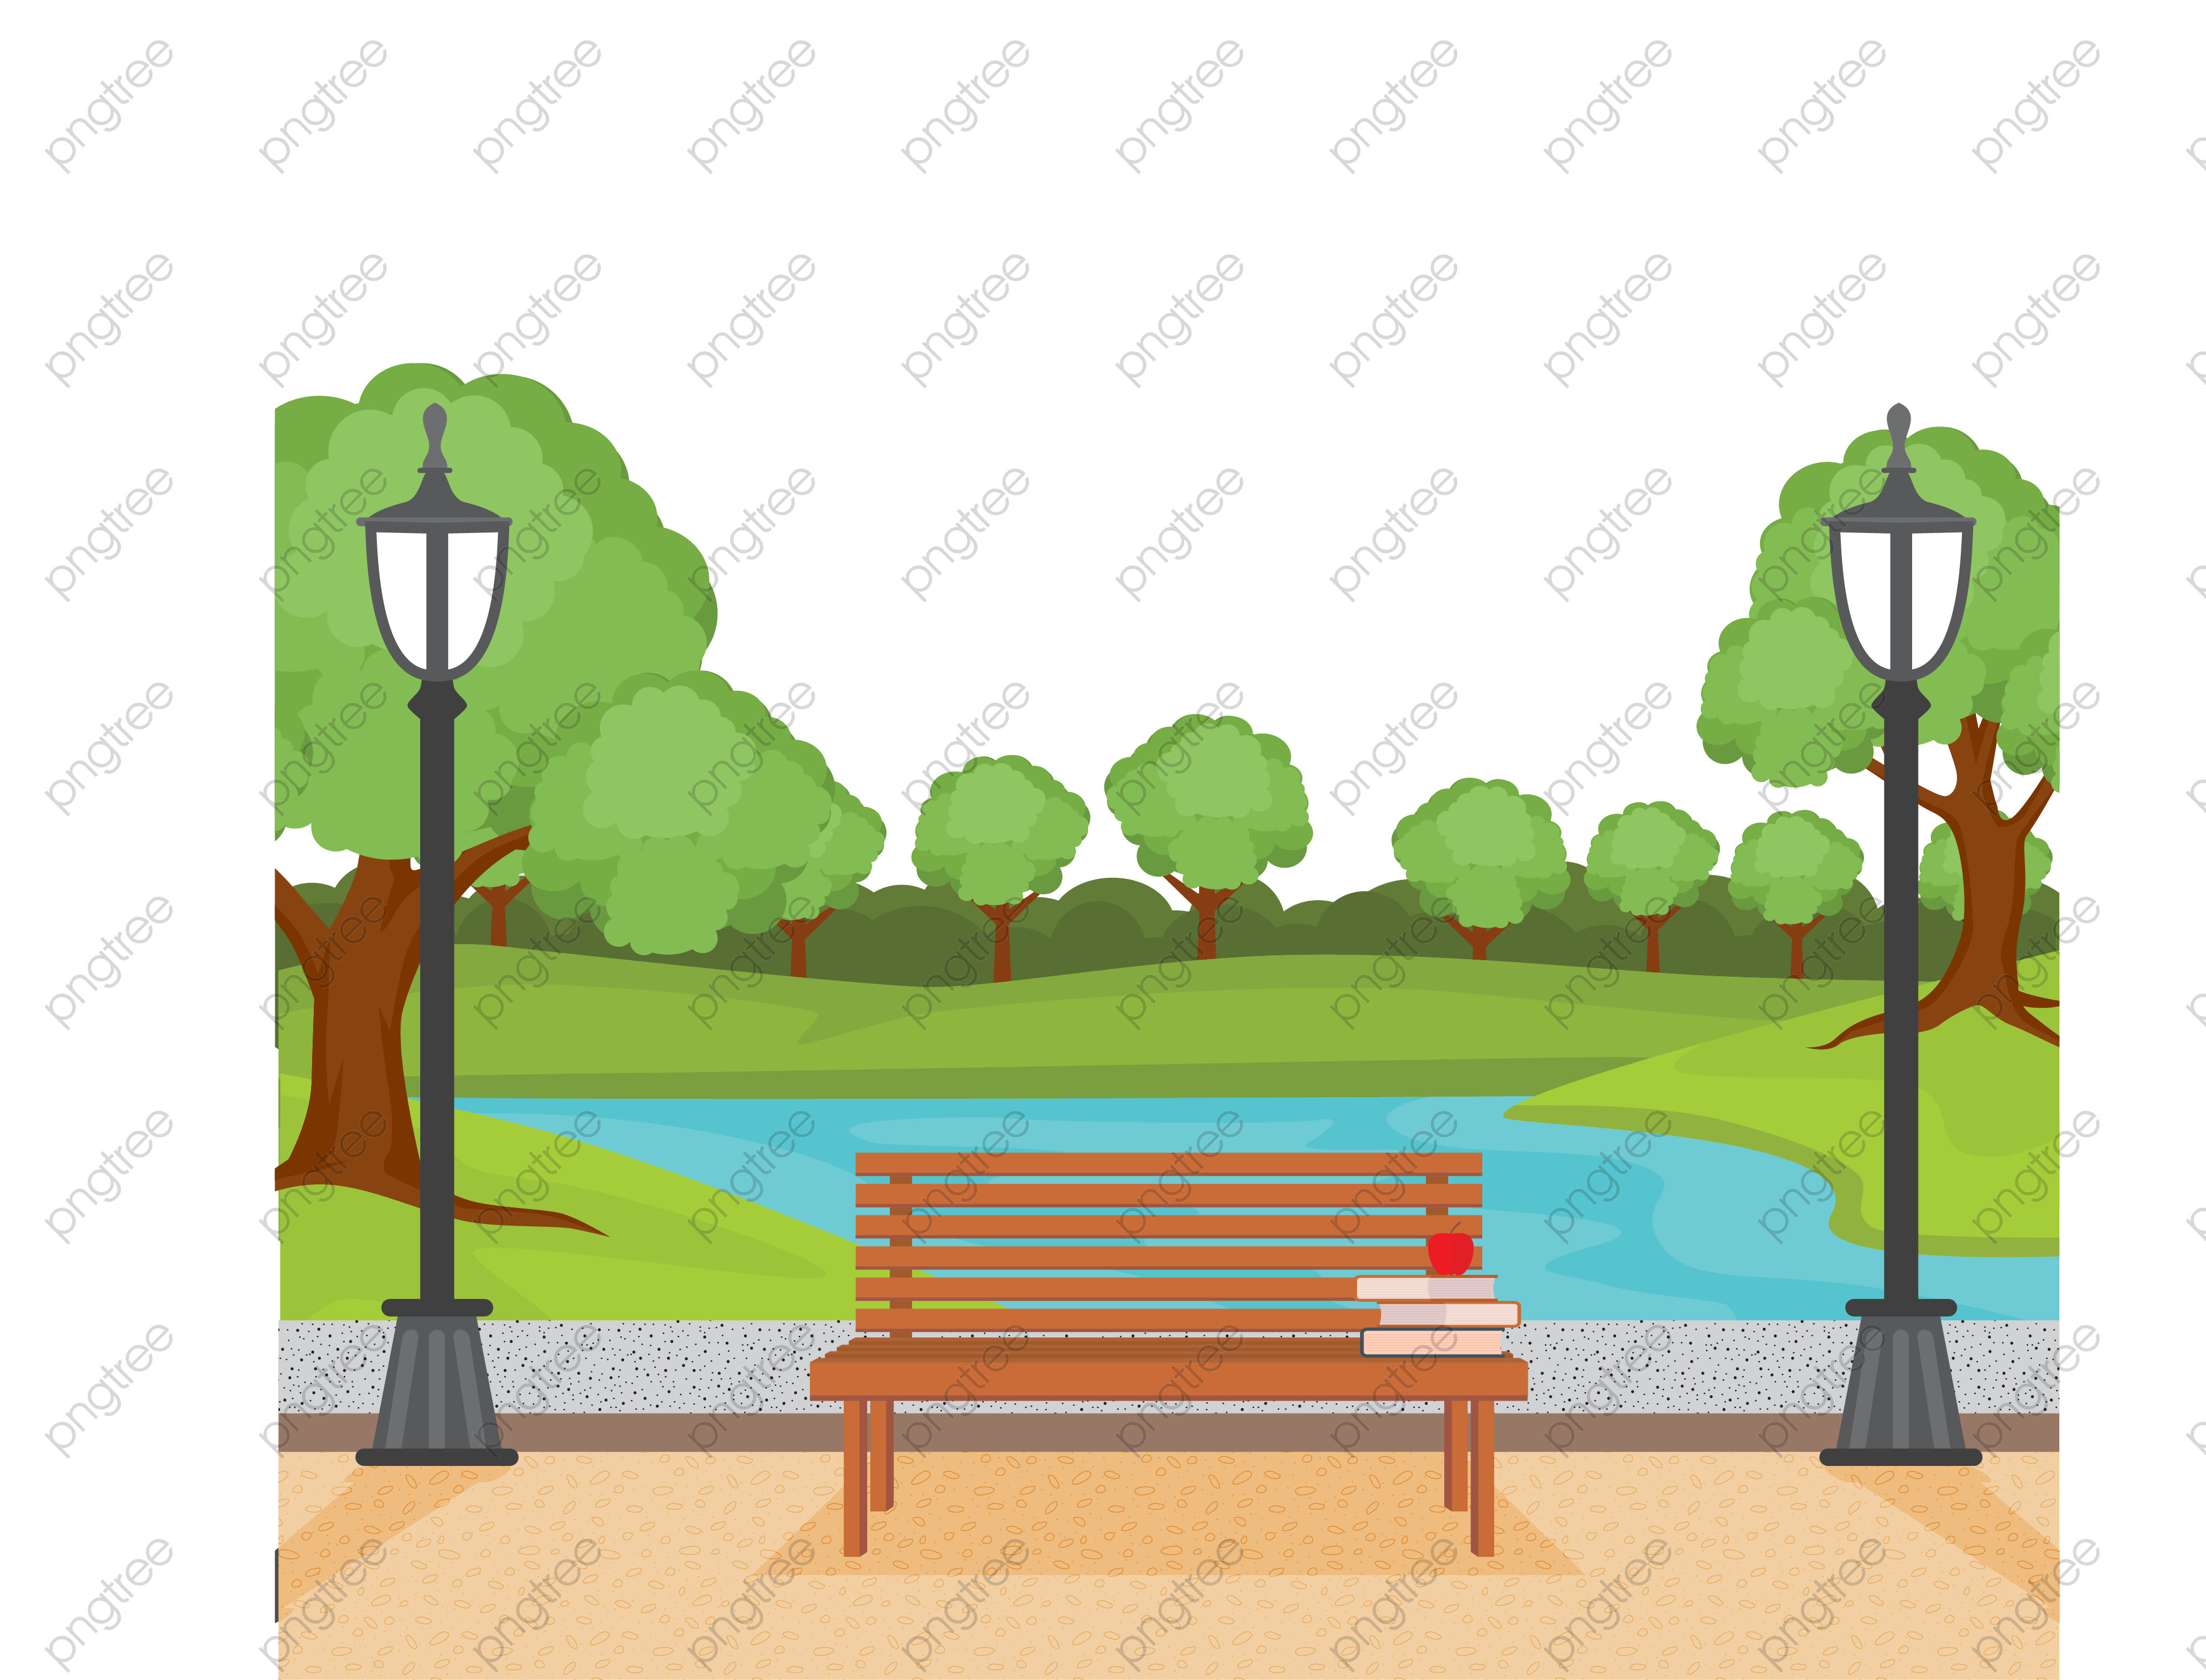 Park bench from behind clipart graphic library library Download Free png Transparent city park benches and scenery ... graphic library library